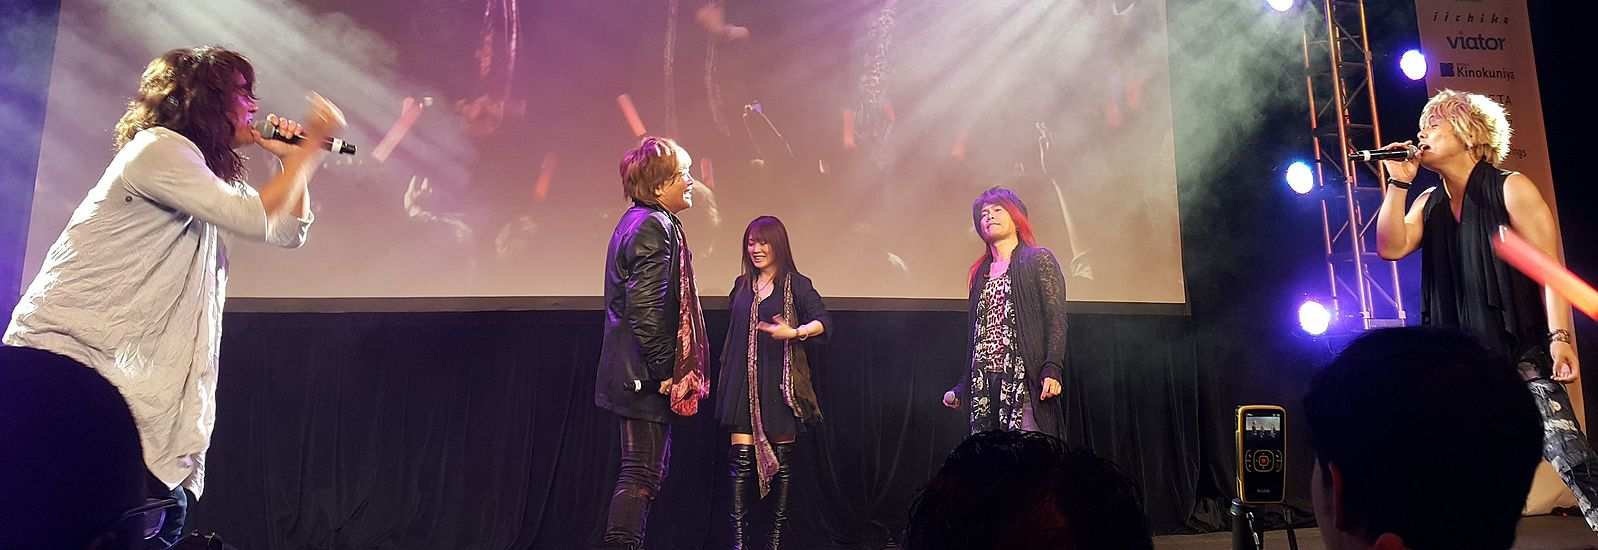 JAM Project at the 7th annual J-Pop Summit in San Francisco, California.